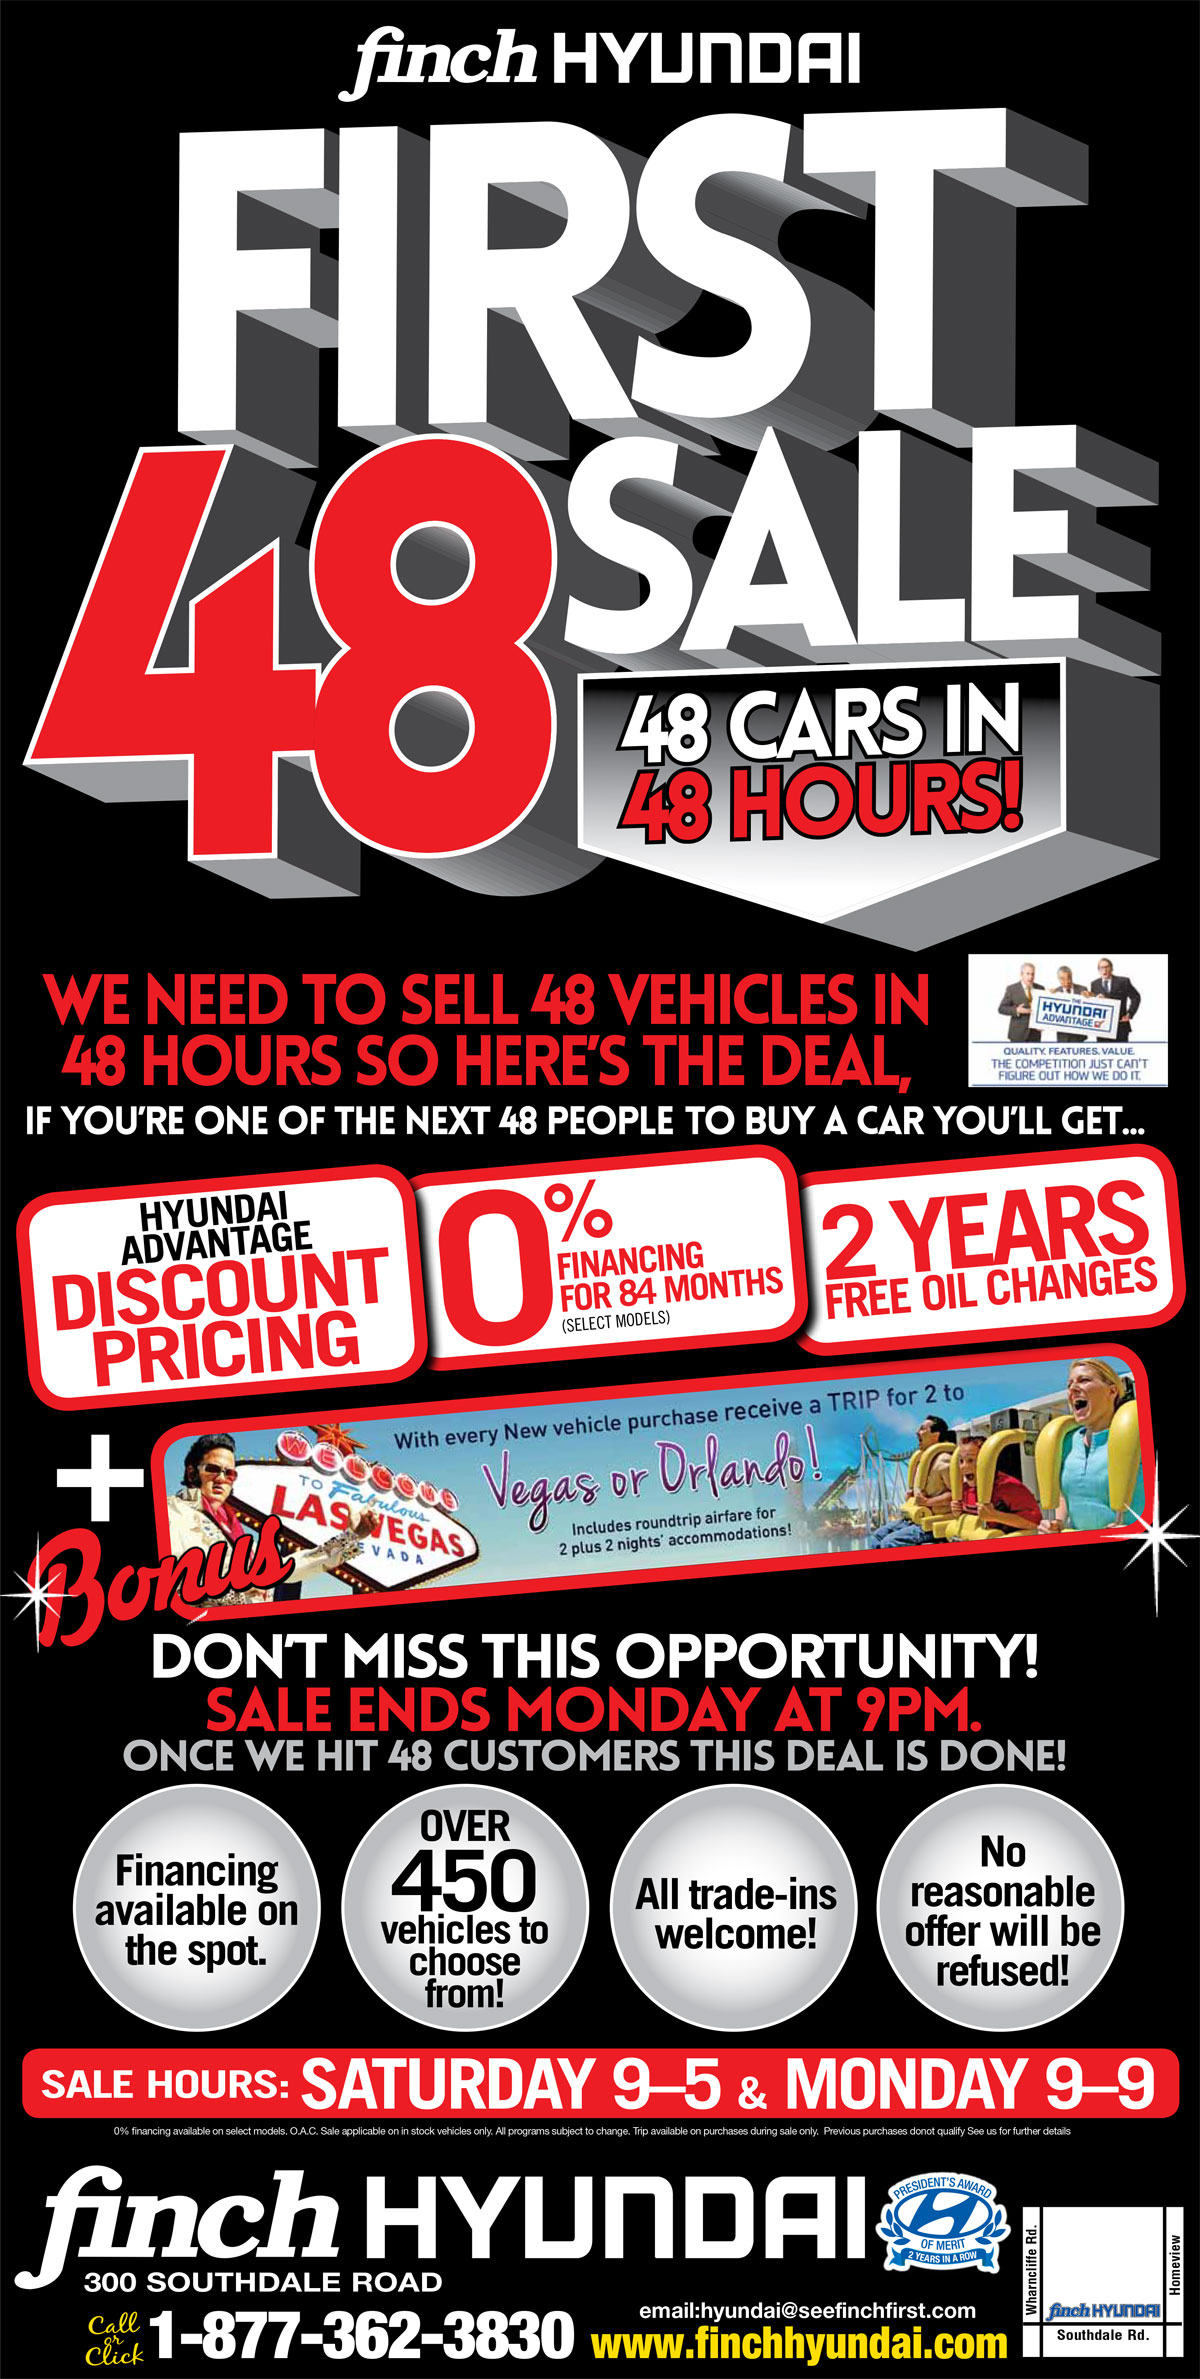 We need to sell 47 vehicles in 48 hours so here's the deal